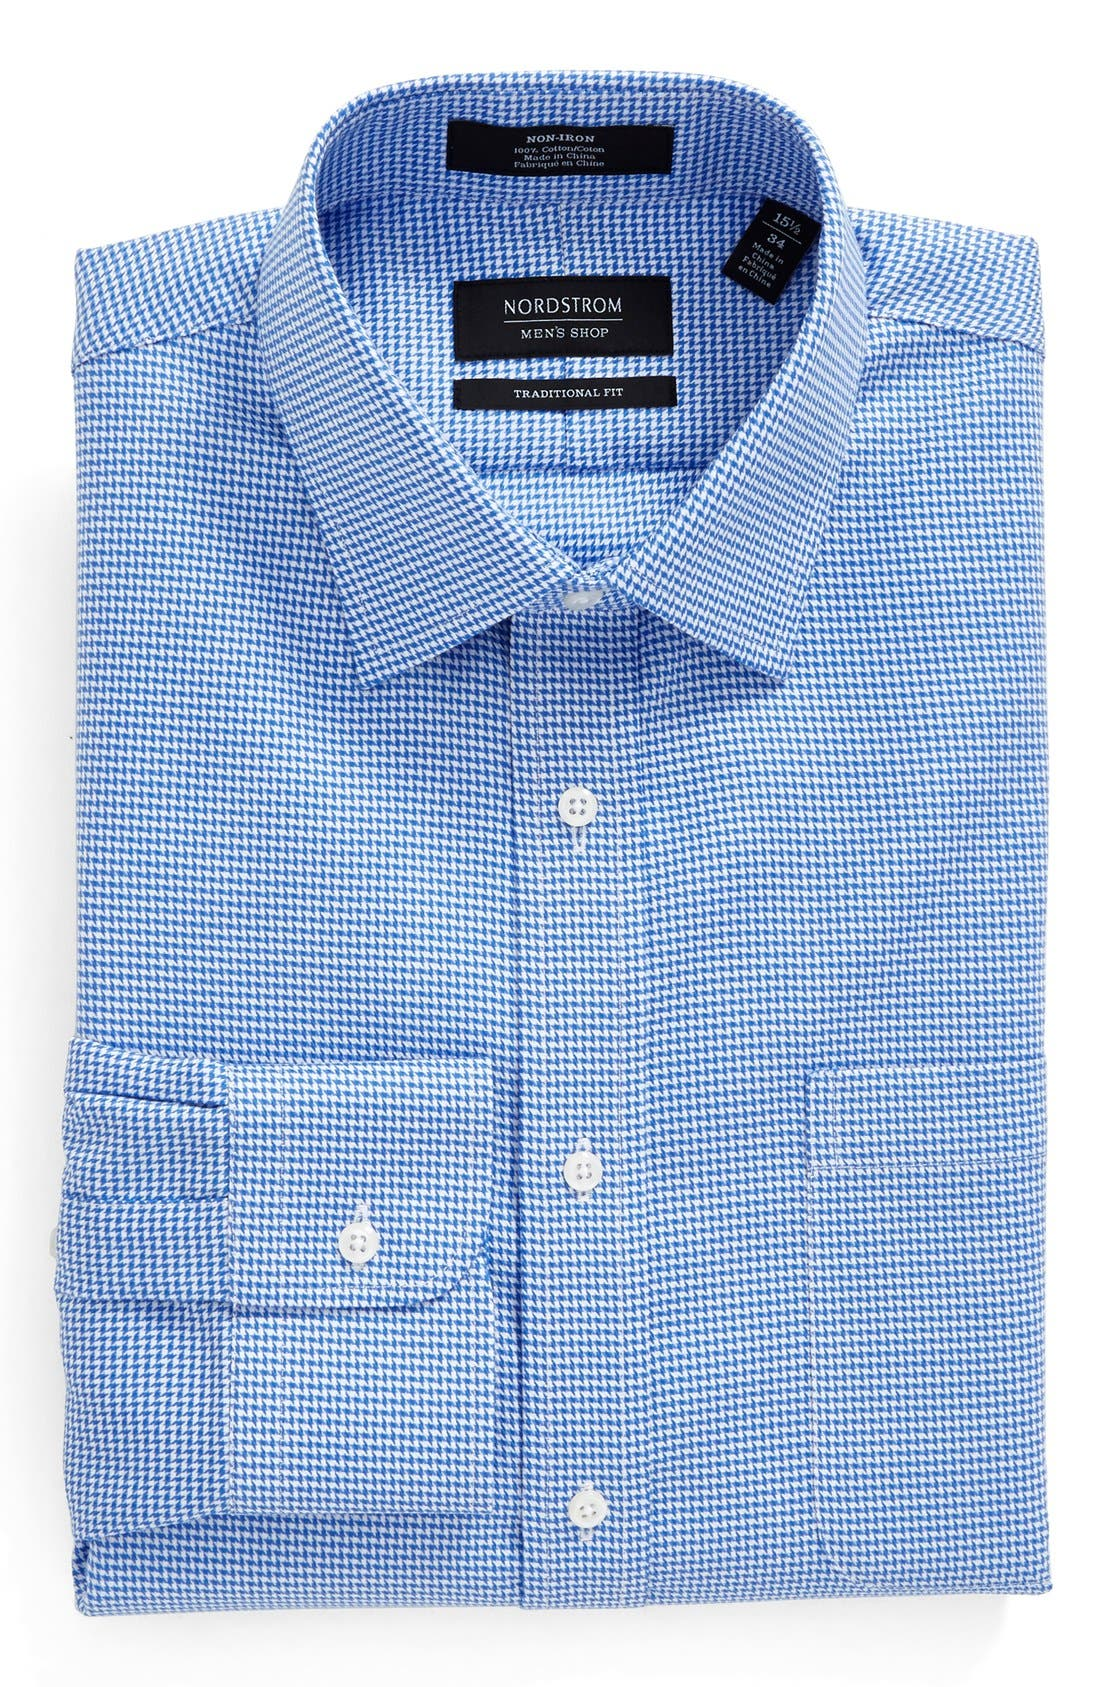 NORDSTROM MEN'S SHOP Traditional Fit Non-Iron Micro Houndstooth